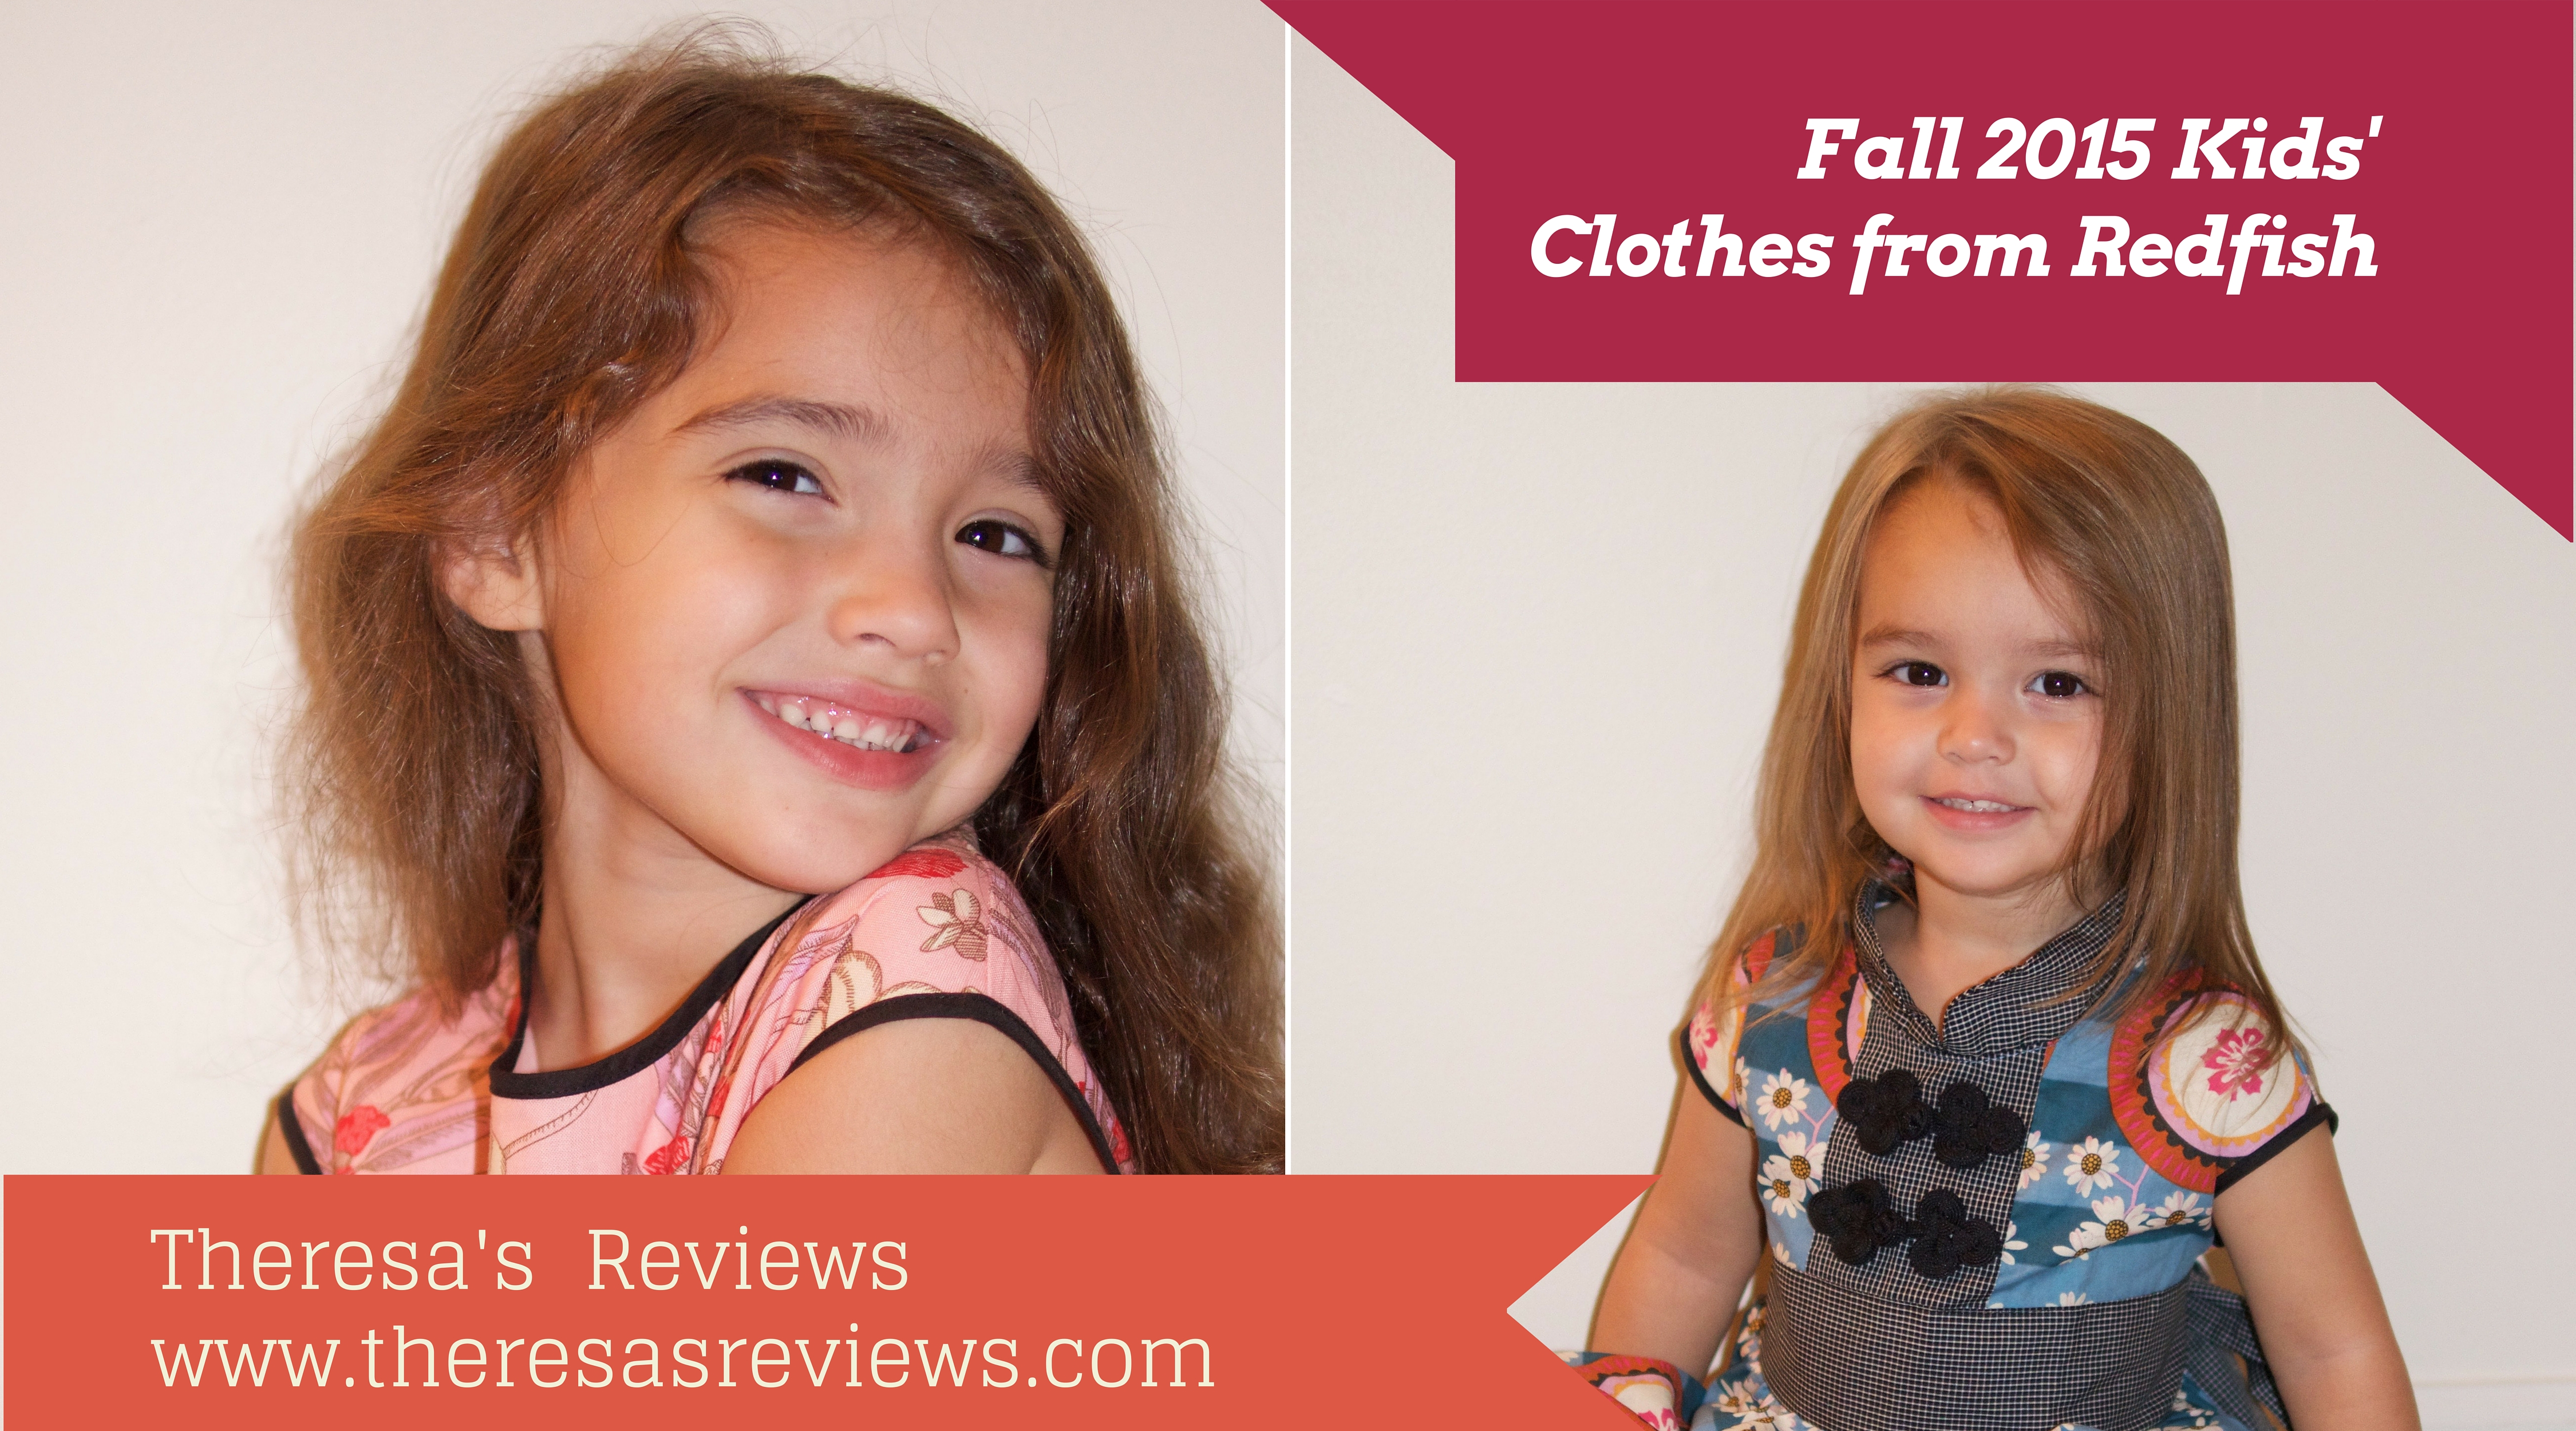 Cool Kids Clothing Fall 2015 from Redfish - Theresa's Reviews - www.theresasreviews.com #courageouskids